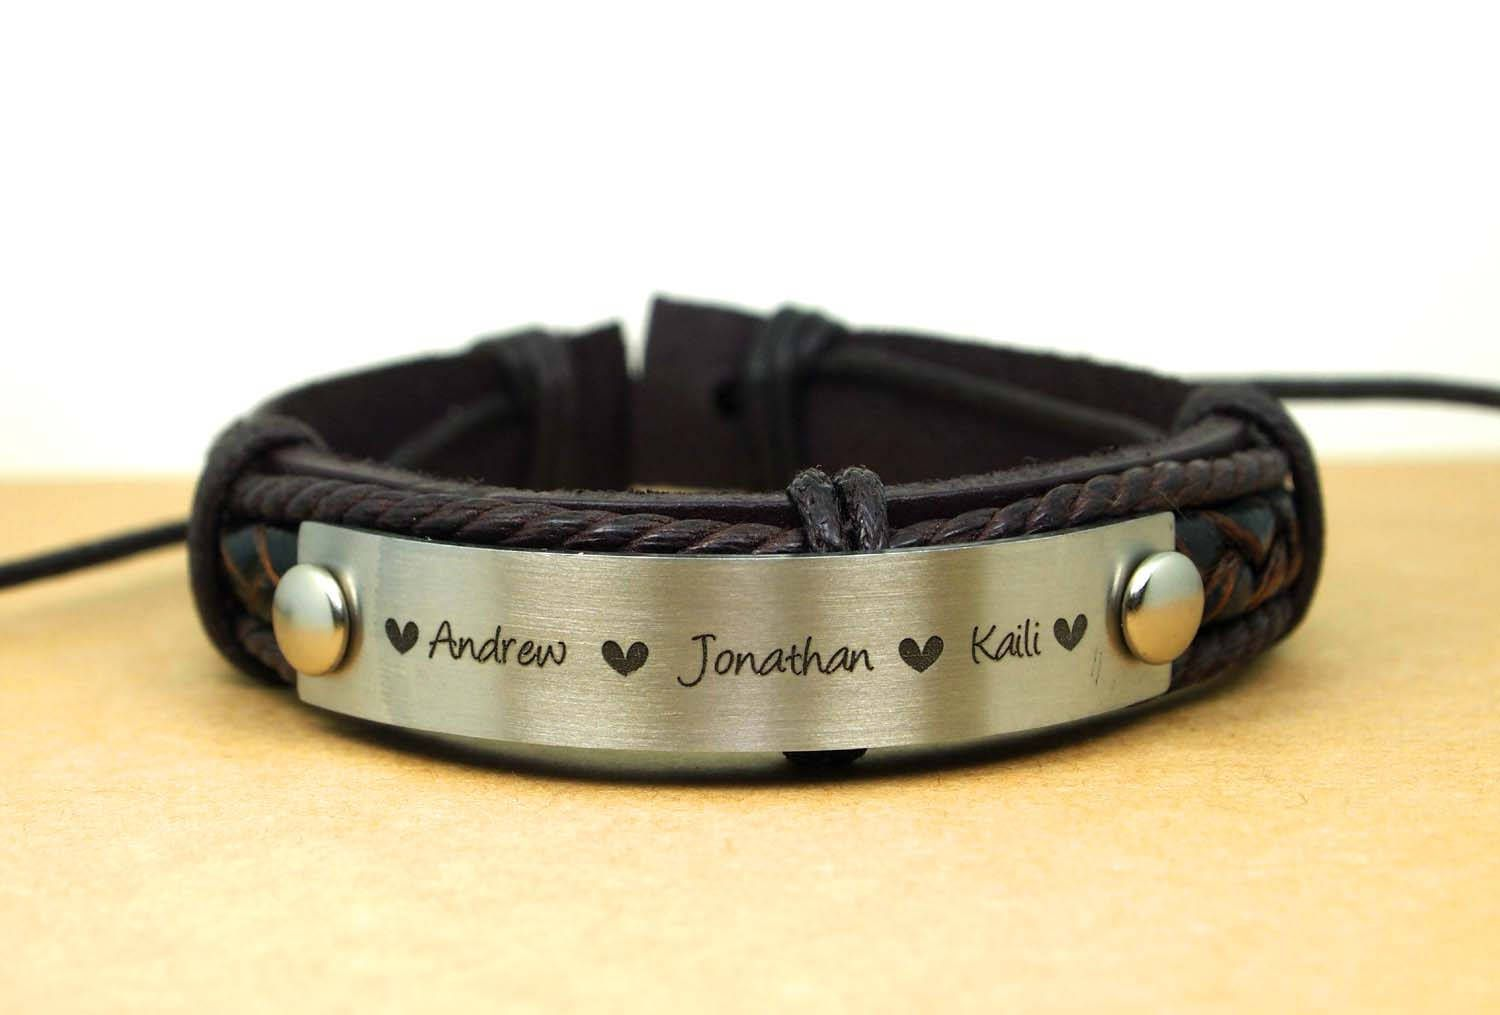 Engraved Leather Bracelets Personalize Name Custom Men Bracelet Uni Gift Ideas